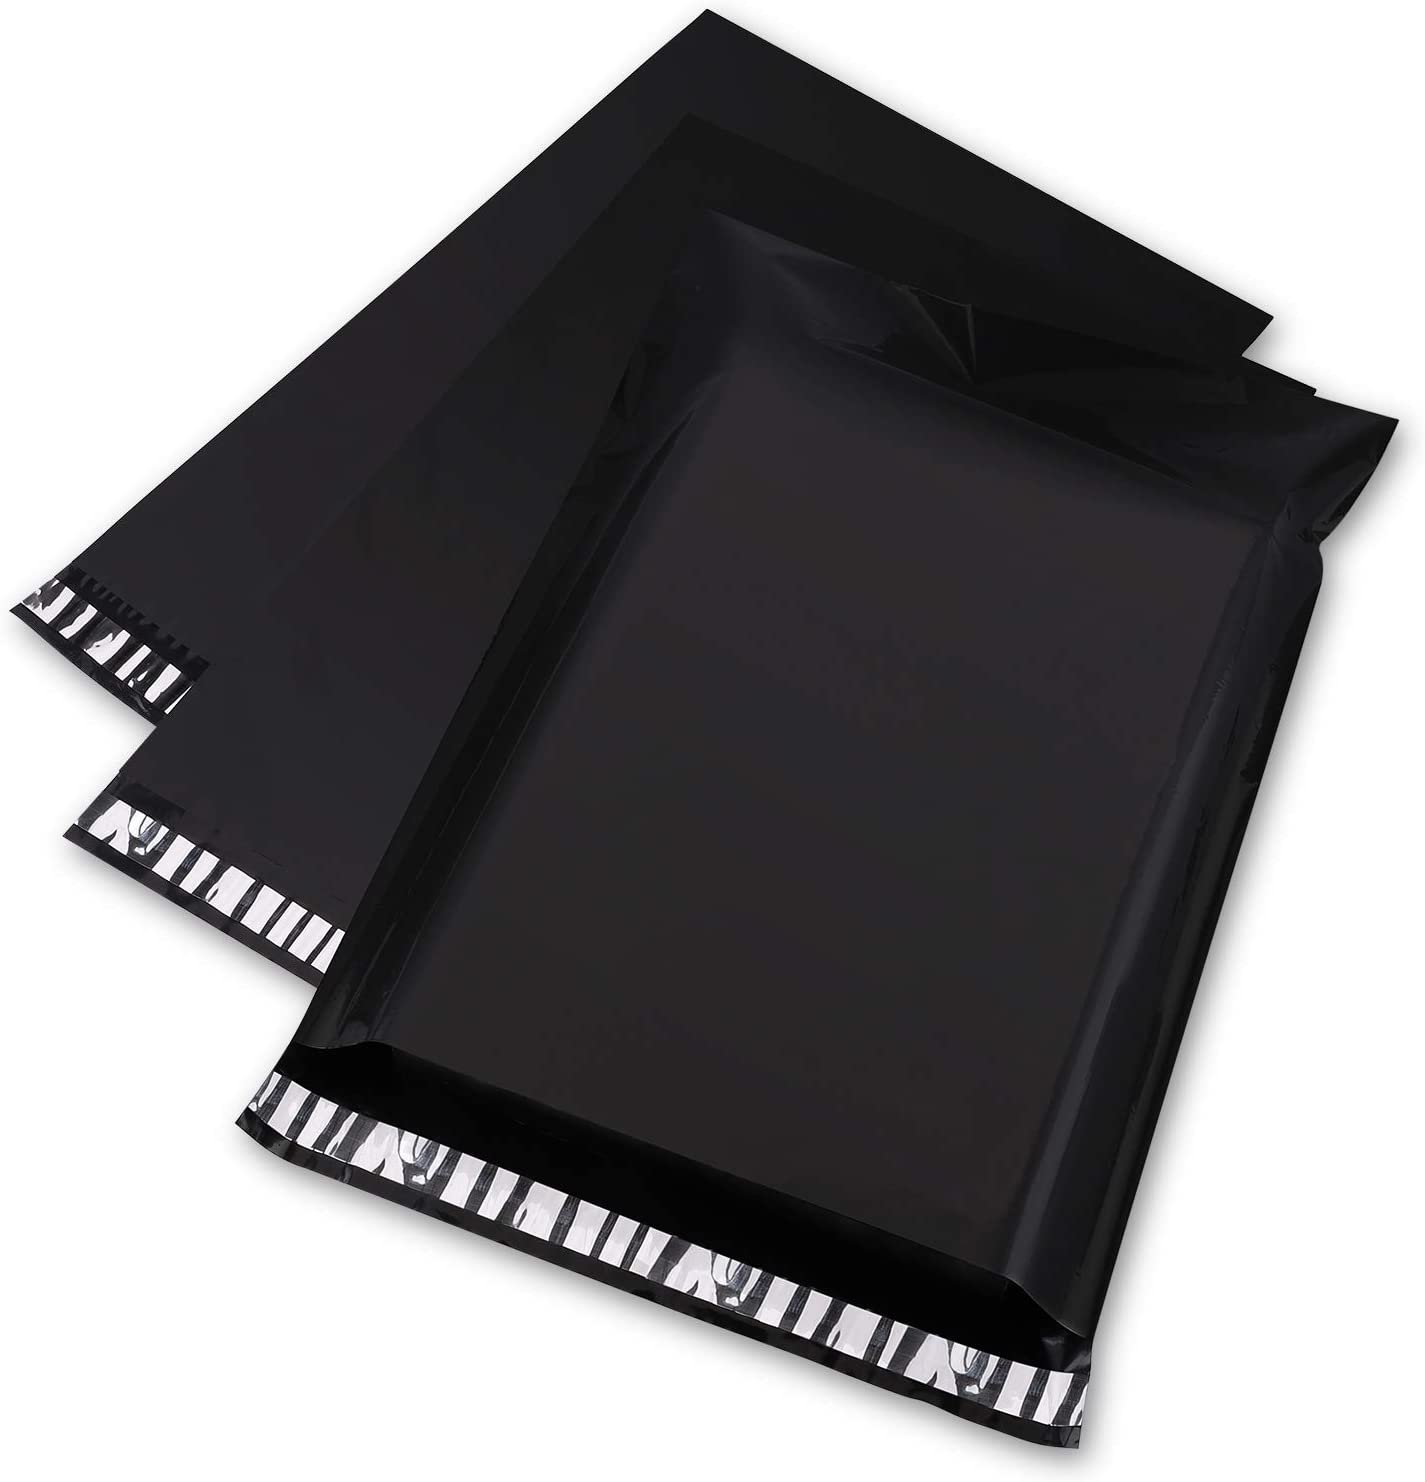 Metronic Black Poly Mailers Max 84% OFF Large Pack 100 14.5x19 Ranking TOP16